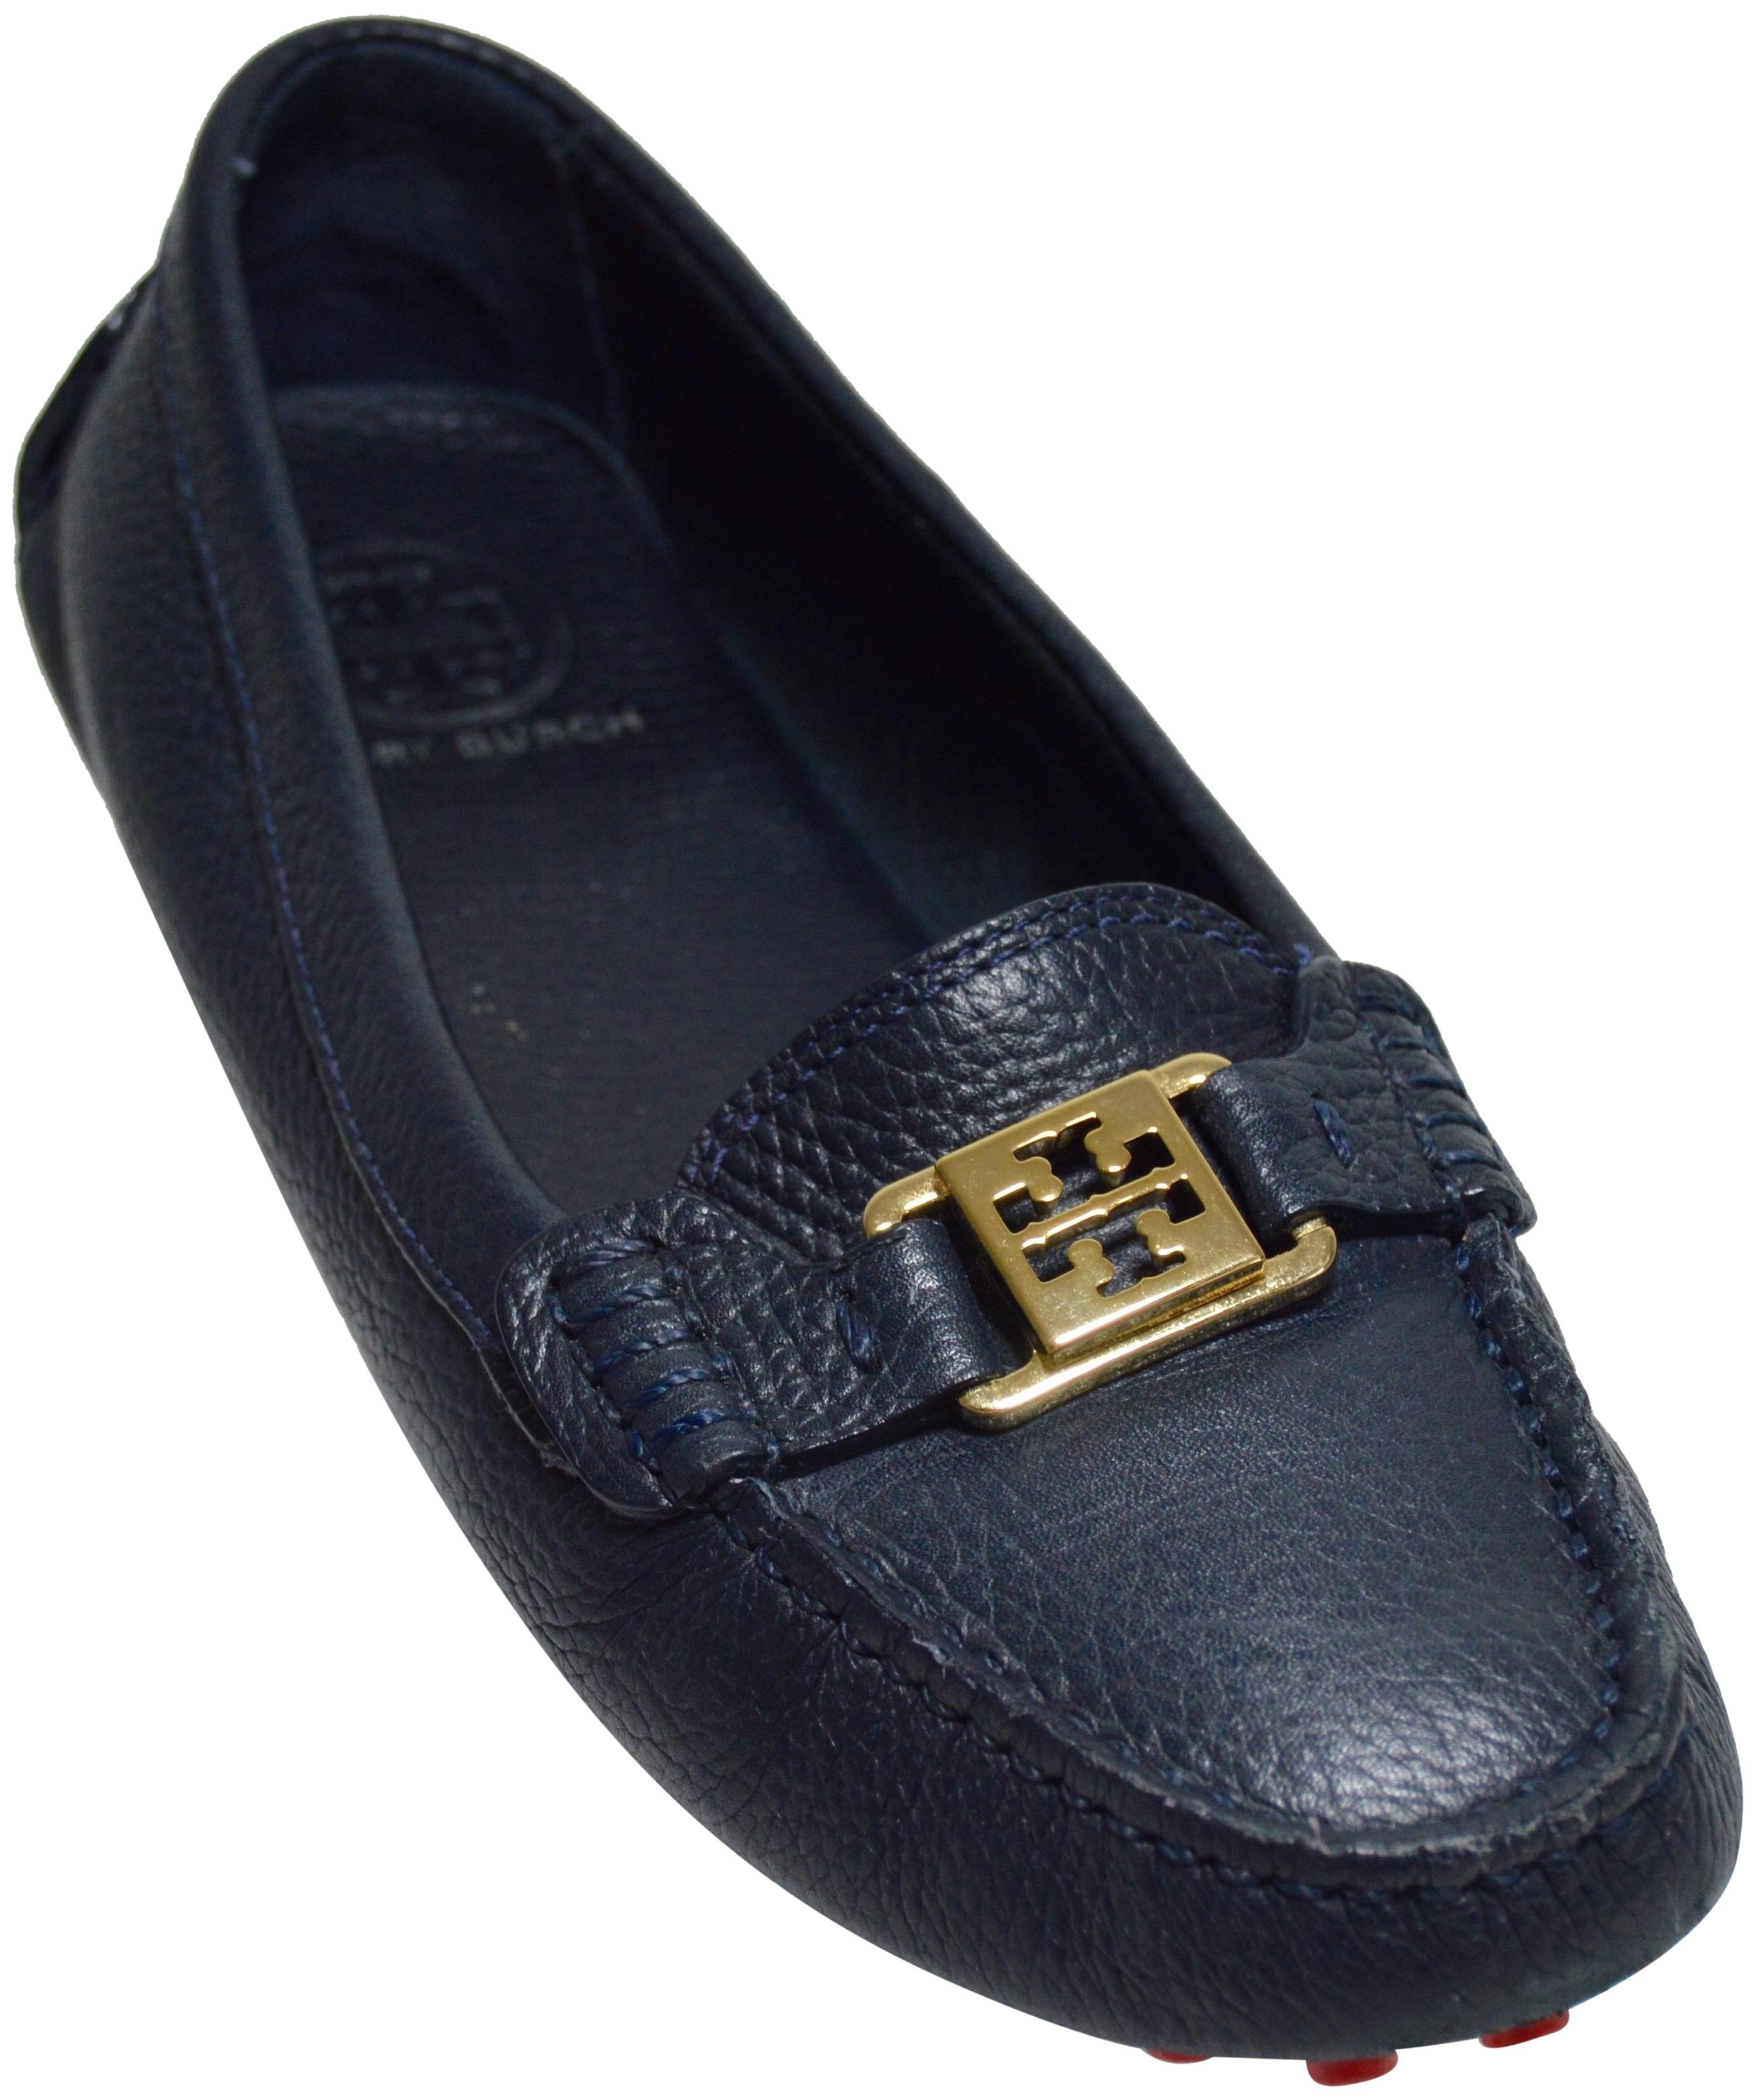 d281ba46ef84 Tory Tory Tory Burch Black Kendrick Driver Loafers Flats Size US 9.5 Regular  (M